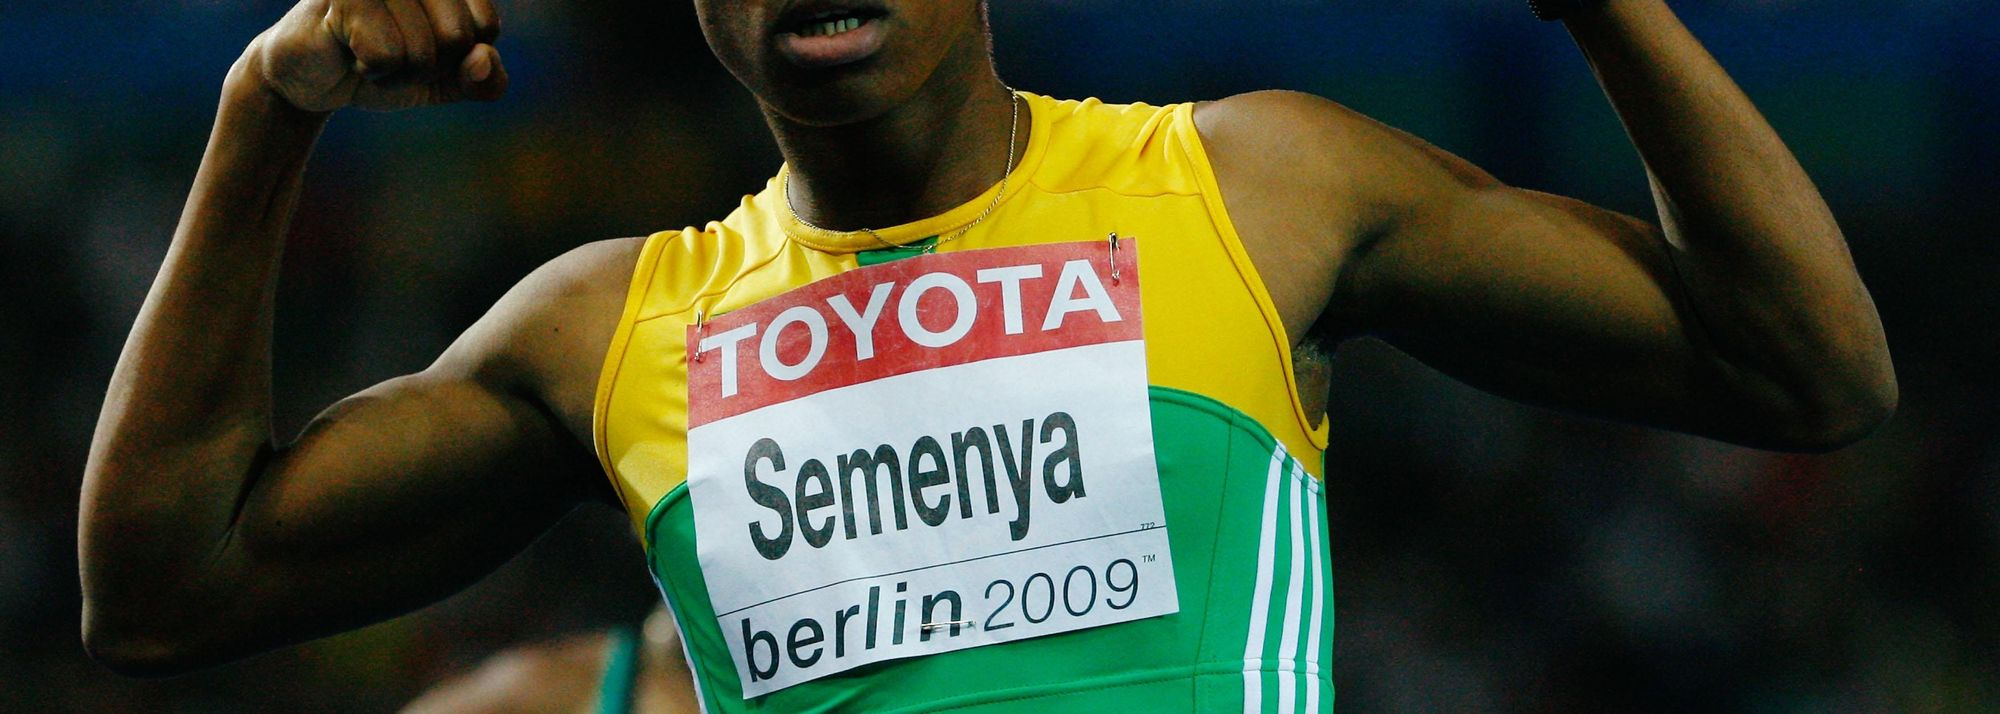 Capping a sensational rise, Caster Semenya captured the 800m World title, the first ever for South Africa in the middle distances.